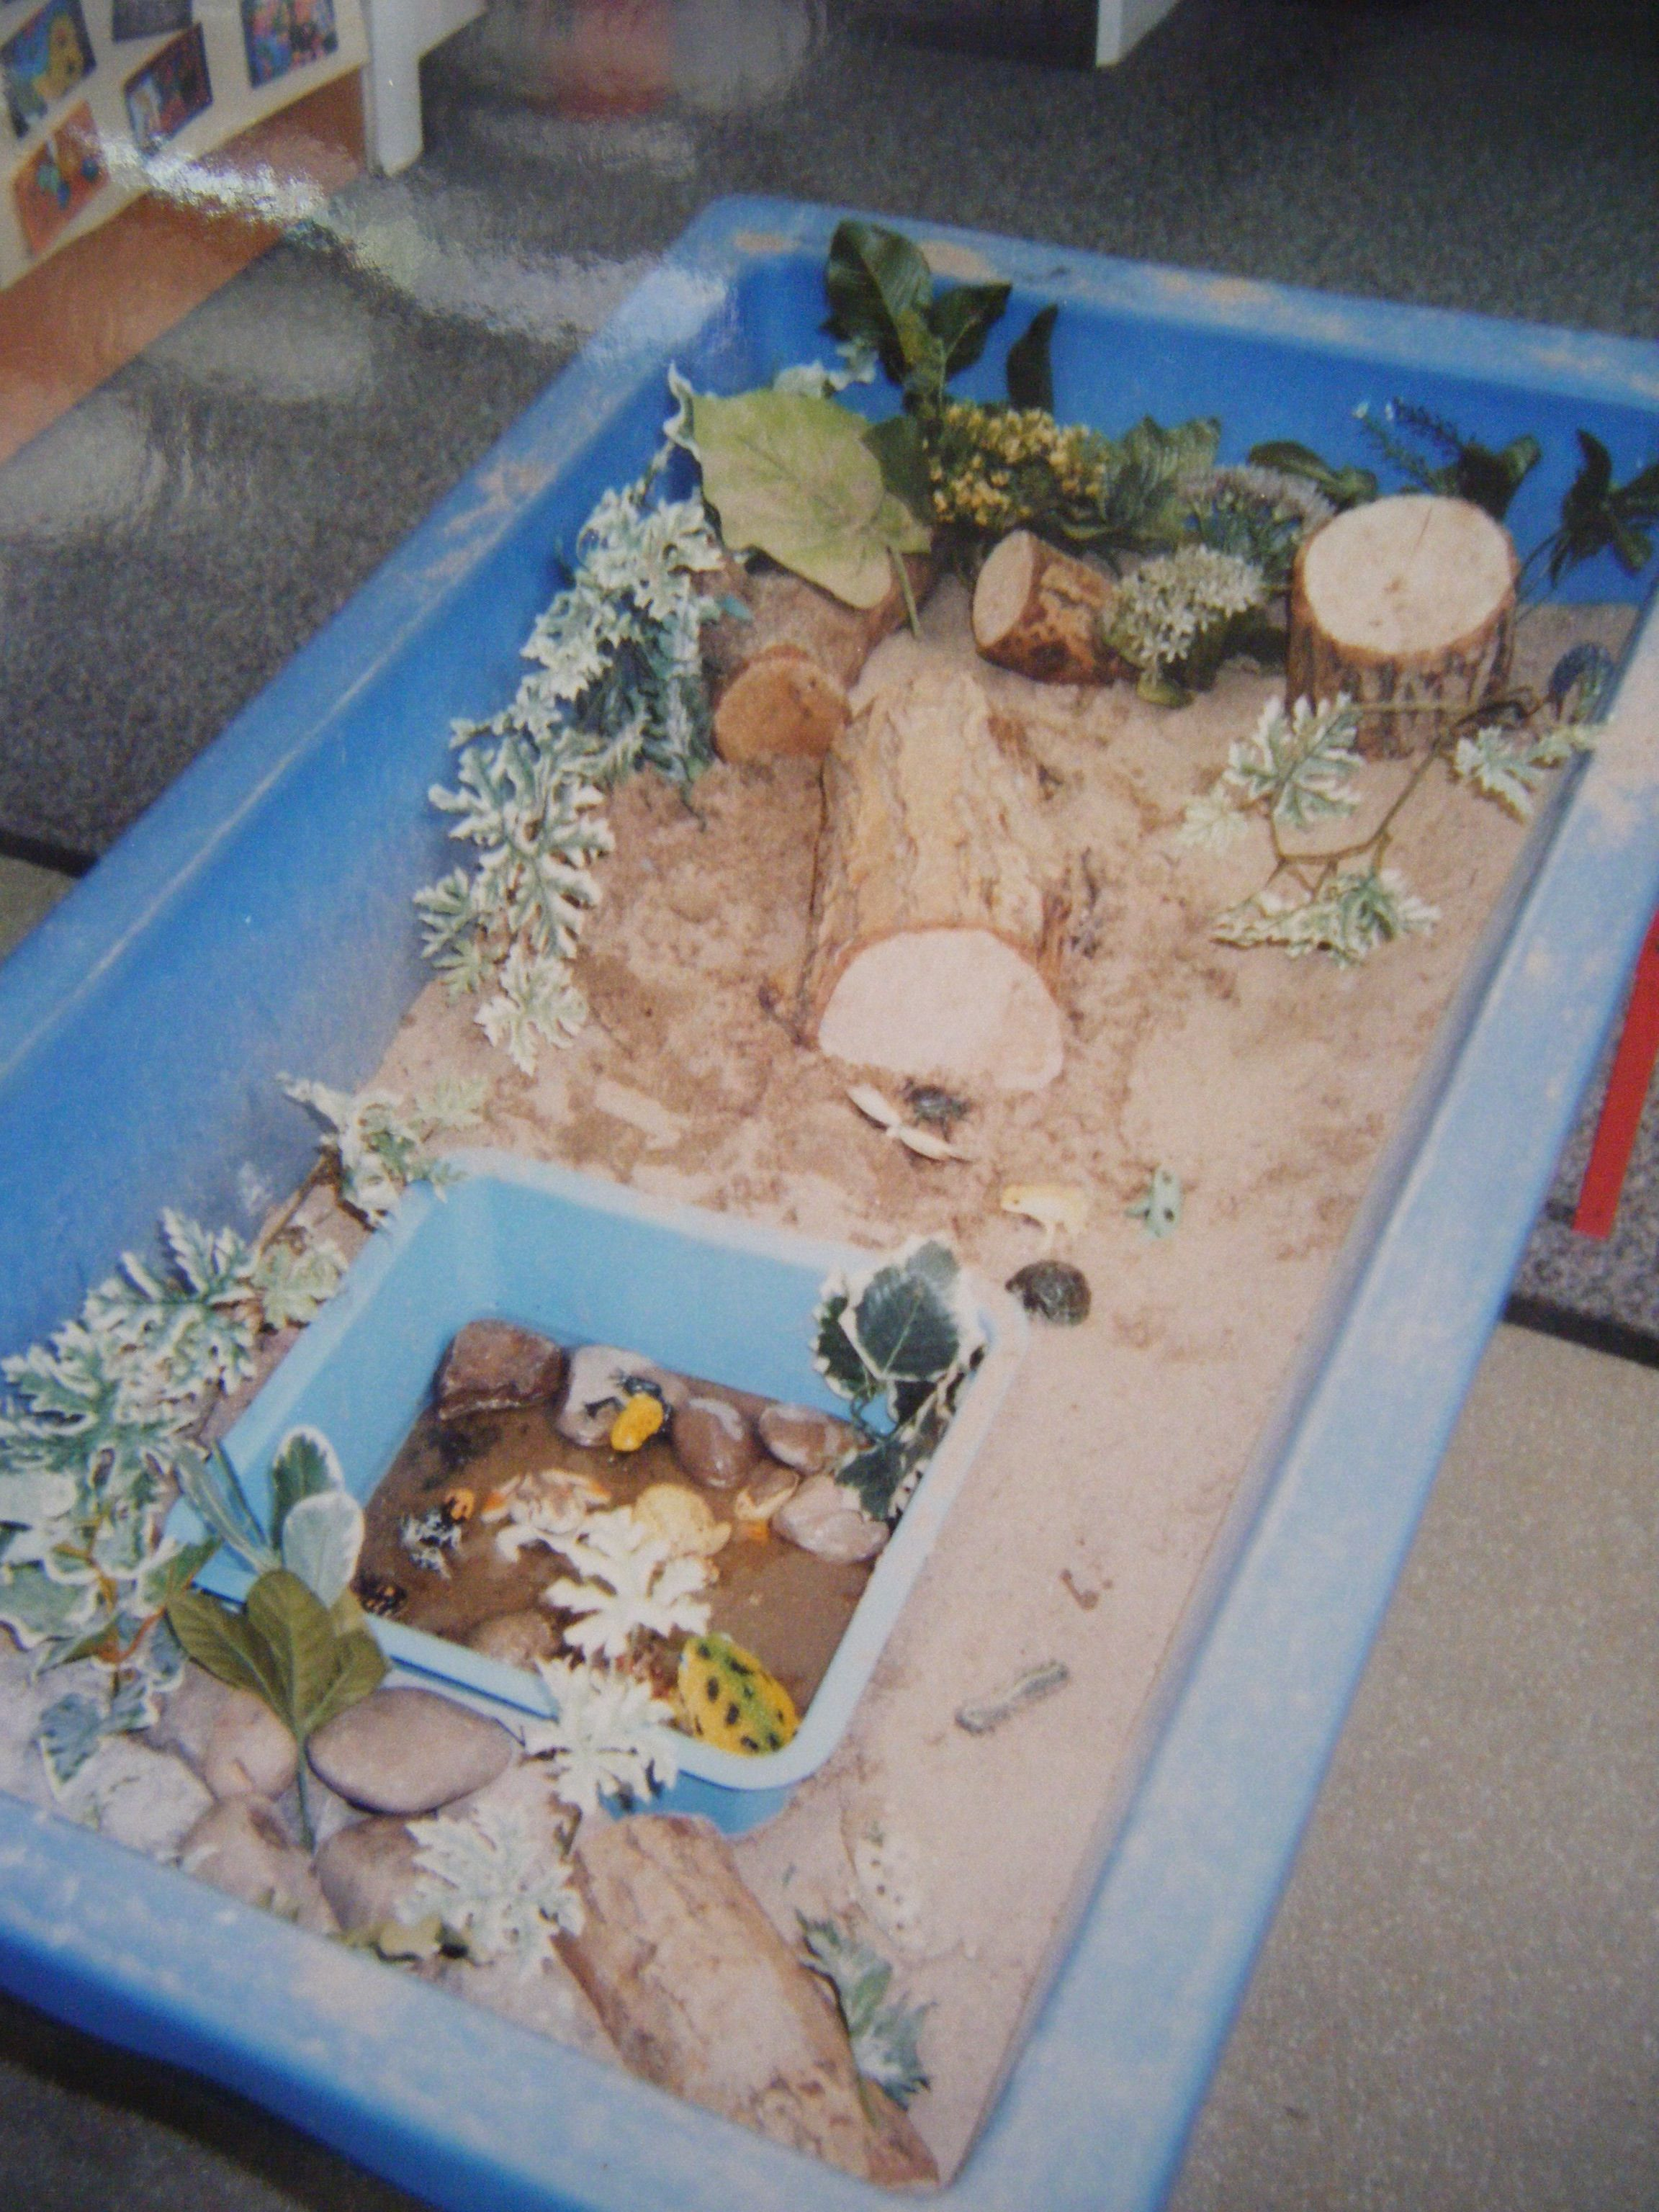 Adding A Bowl To Create A Pond For The Wildlife Small